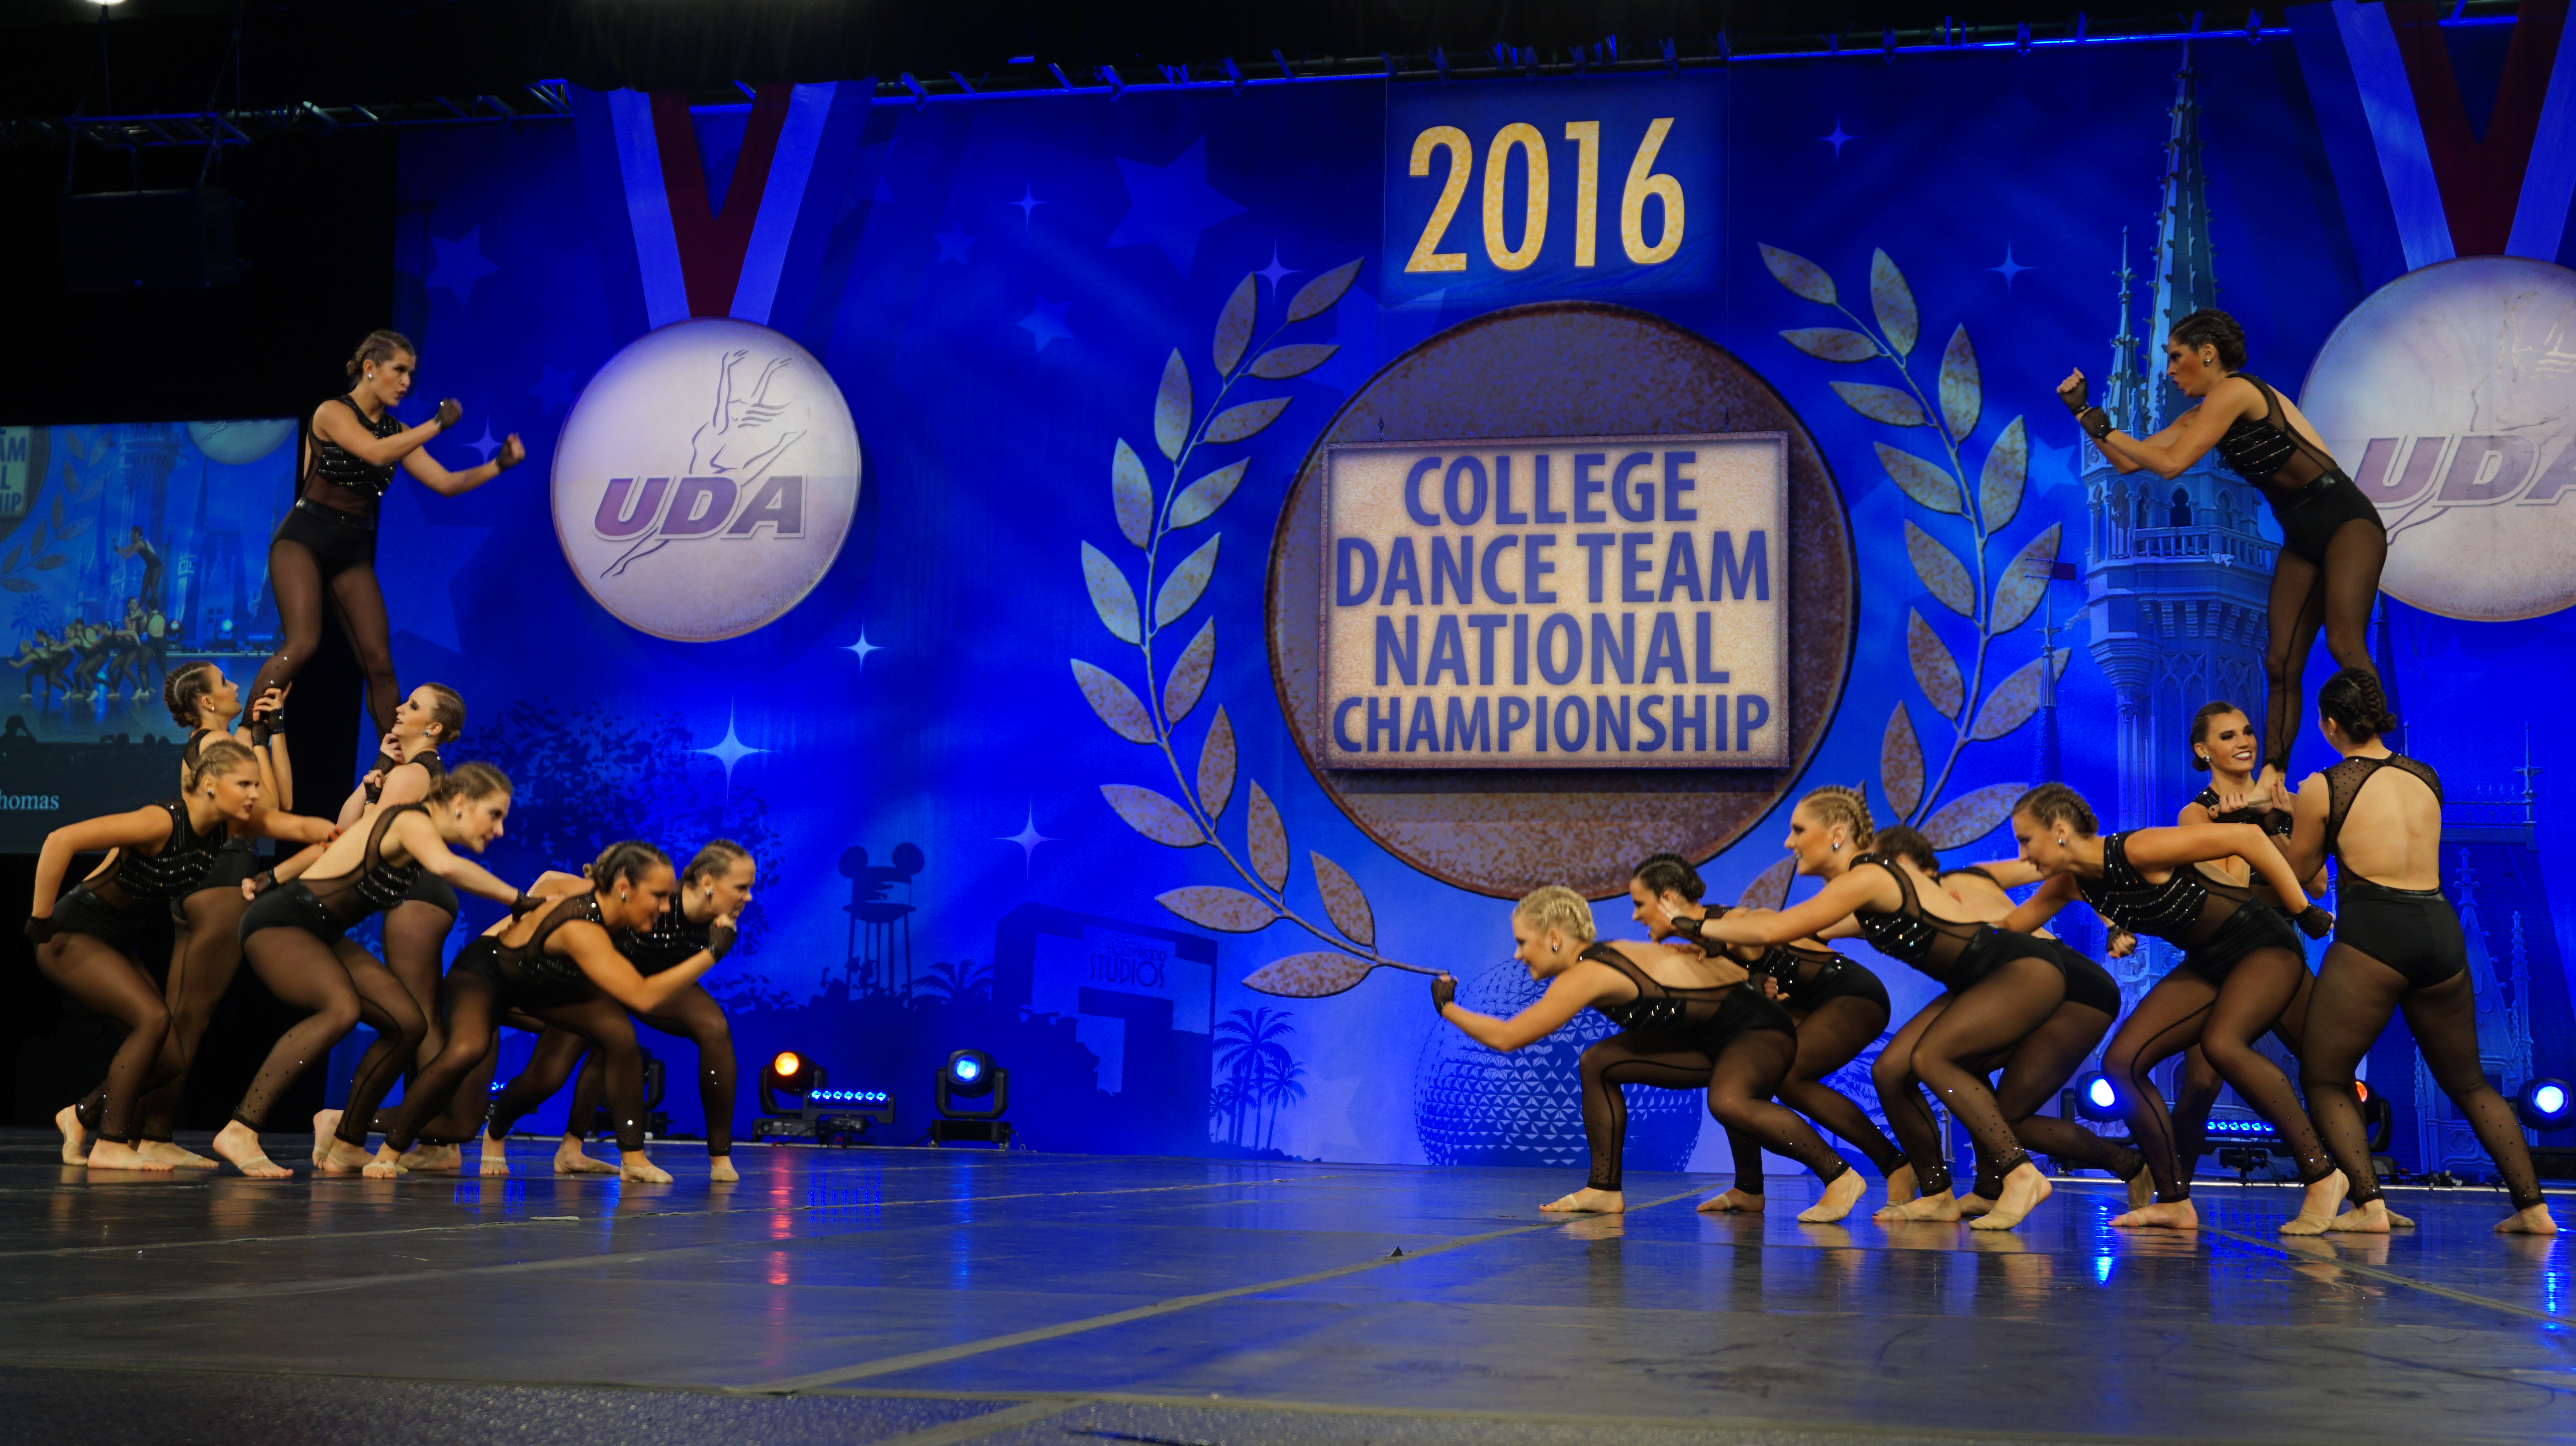 fighters, University of S. Thomas Dance team jazz costume, Ronda Rousey, Black edgy costume, low back , crop top and briefs